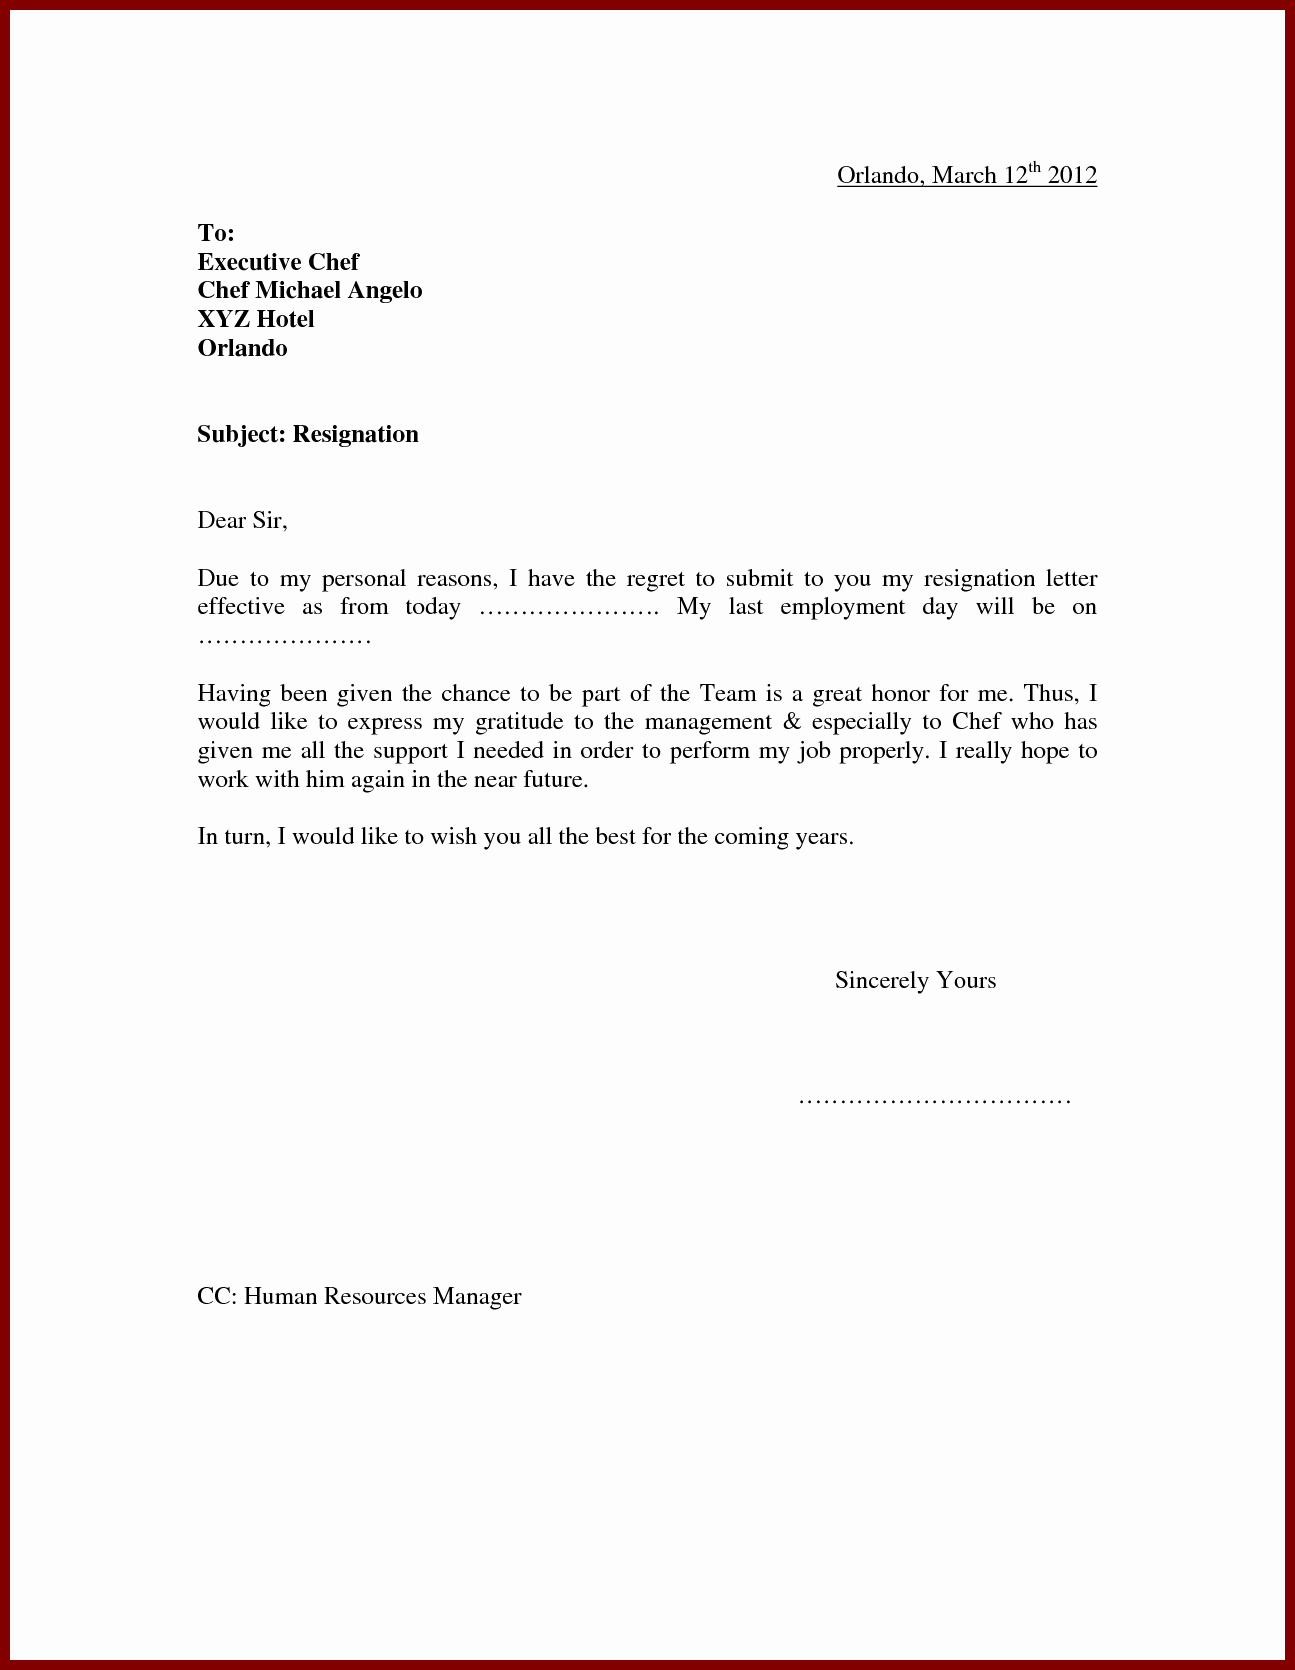 Resignation Letter for Personal Reasons Luxury Pin by Raja1769 On Mknk